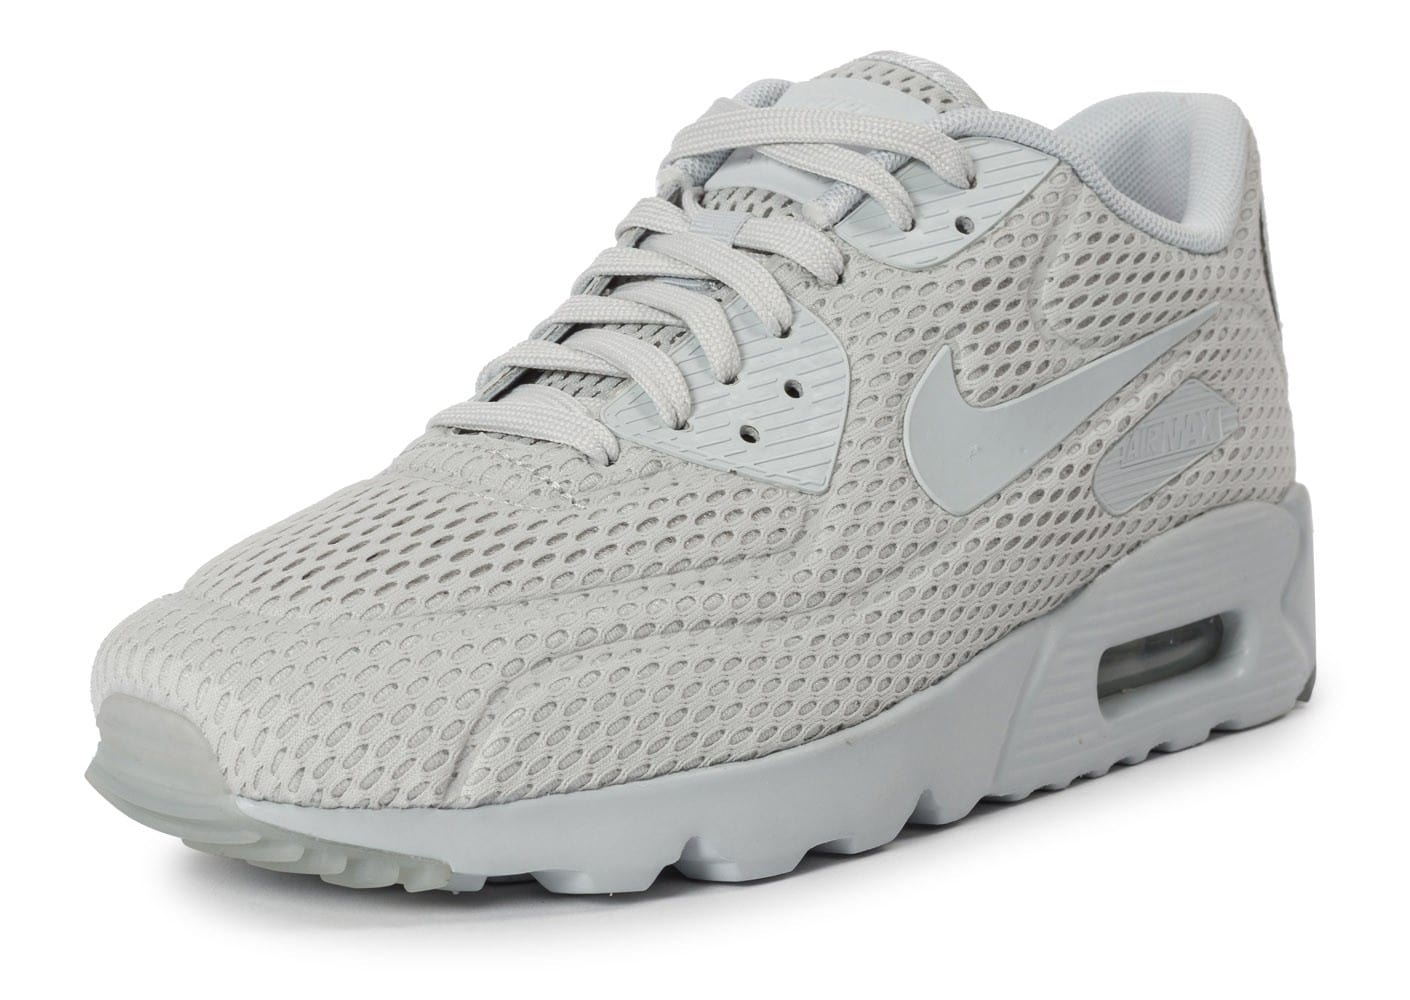 info for f4943 fd860 ... Chaussures Nike Air Max 90 Ultra BR Platinum vue avant ...